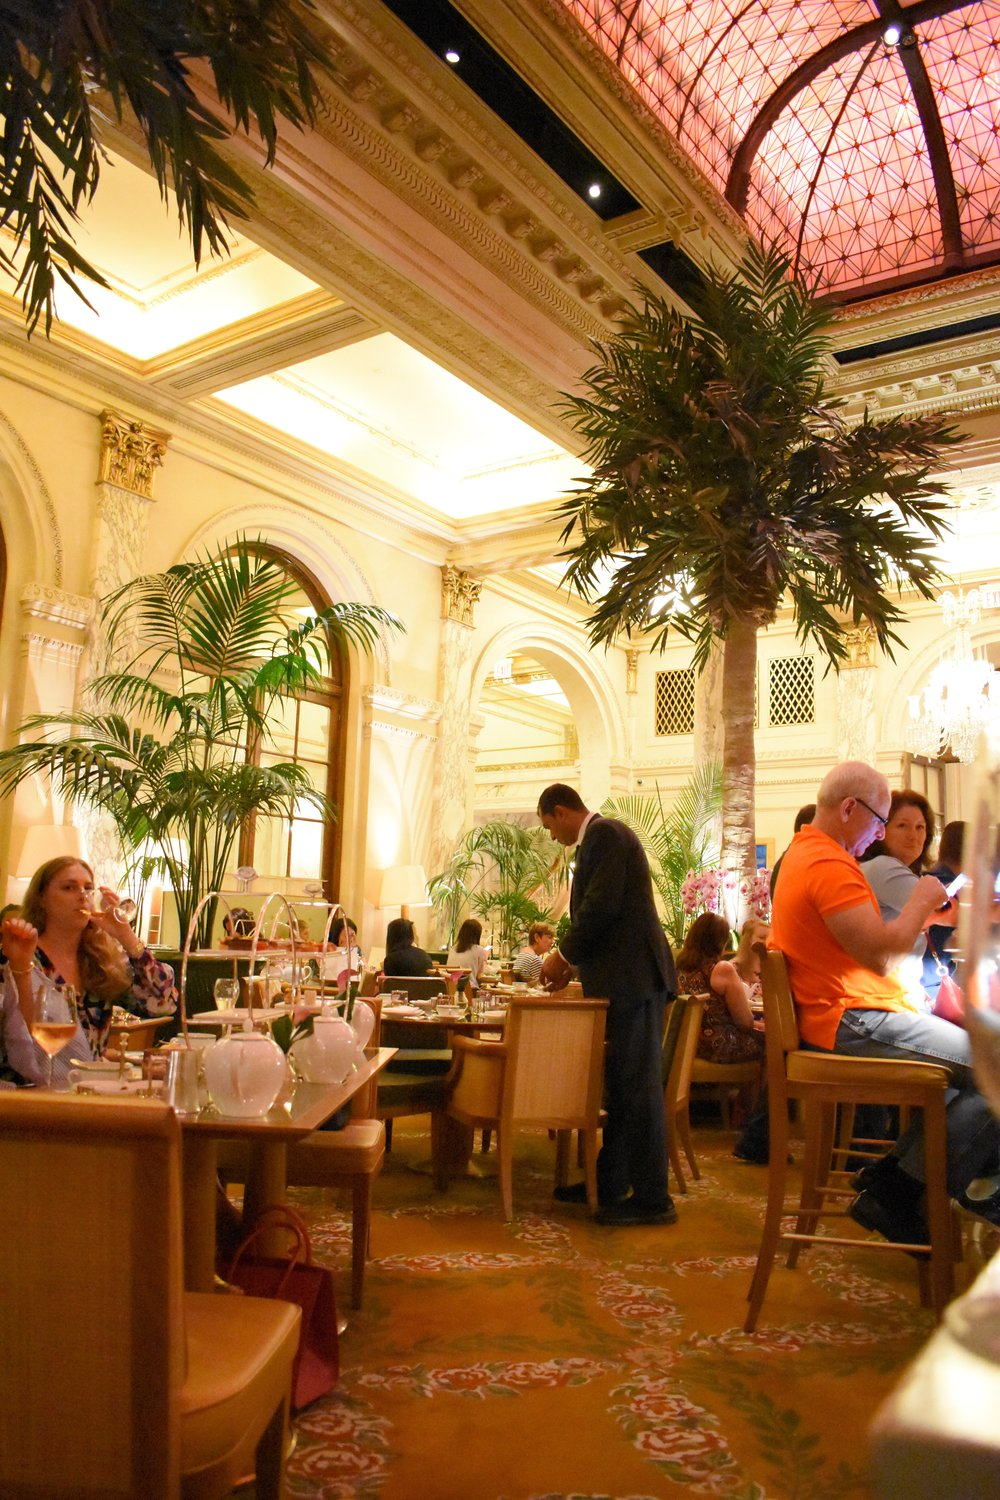 Tea at the Palm Court at the Plaza Hotel in New York City.